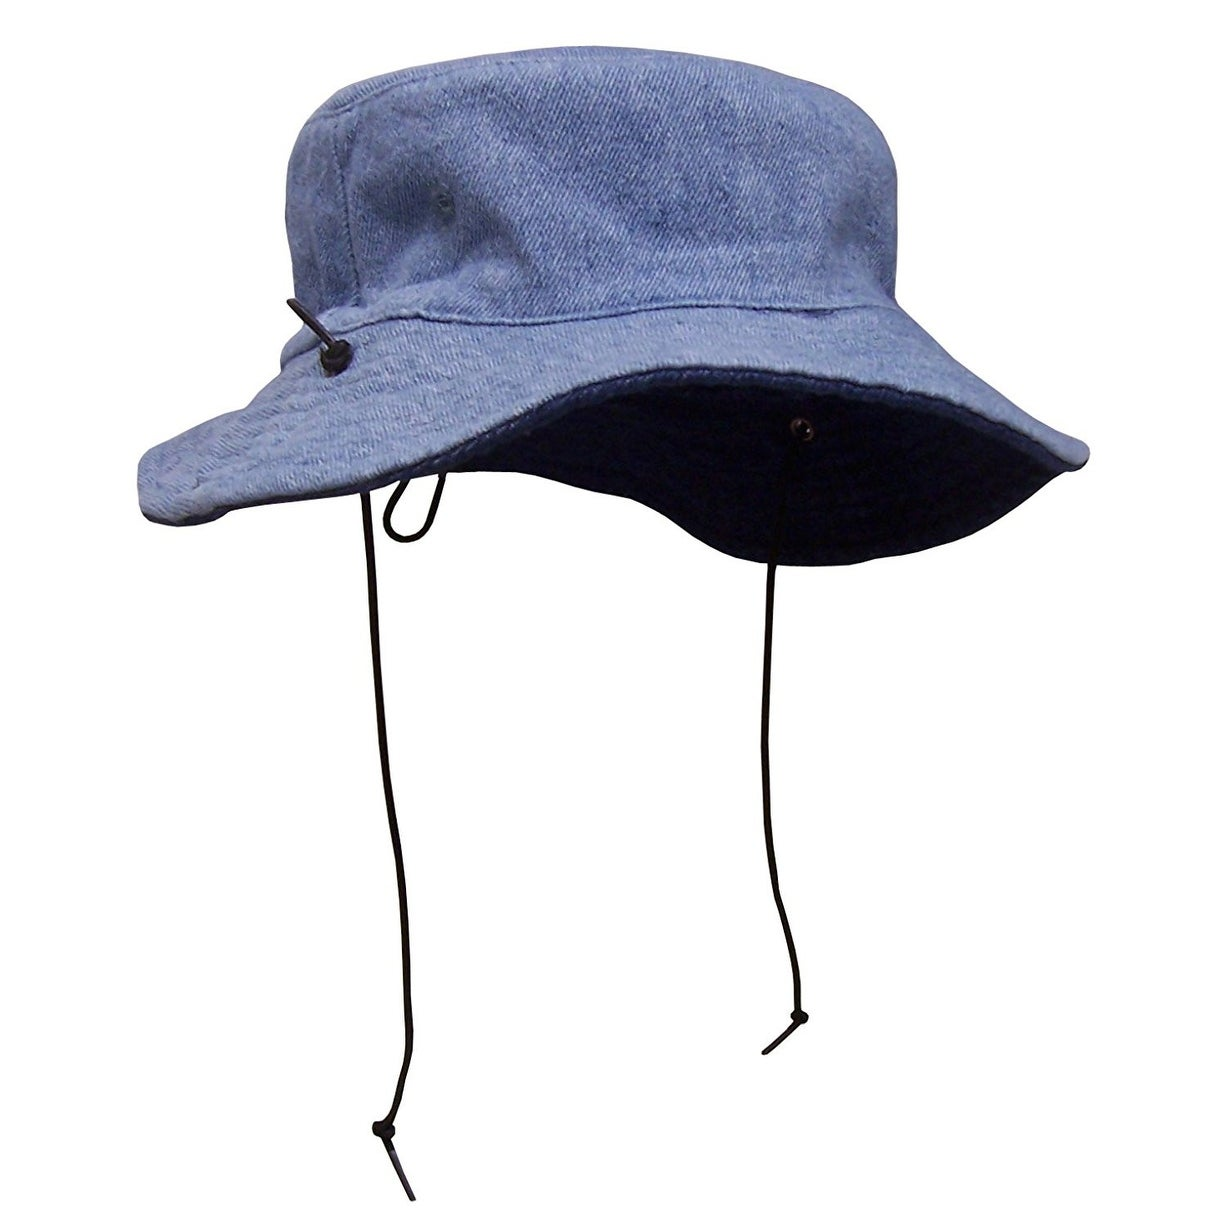 dcbd3a3c5 NICE CAPS Kids Distressed Denim Reversible and Adjustable Sun Hat - Dark  Blue / Light Blue